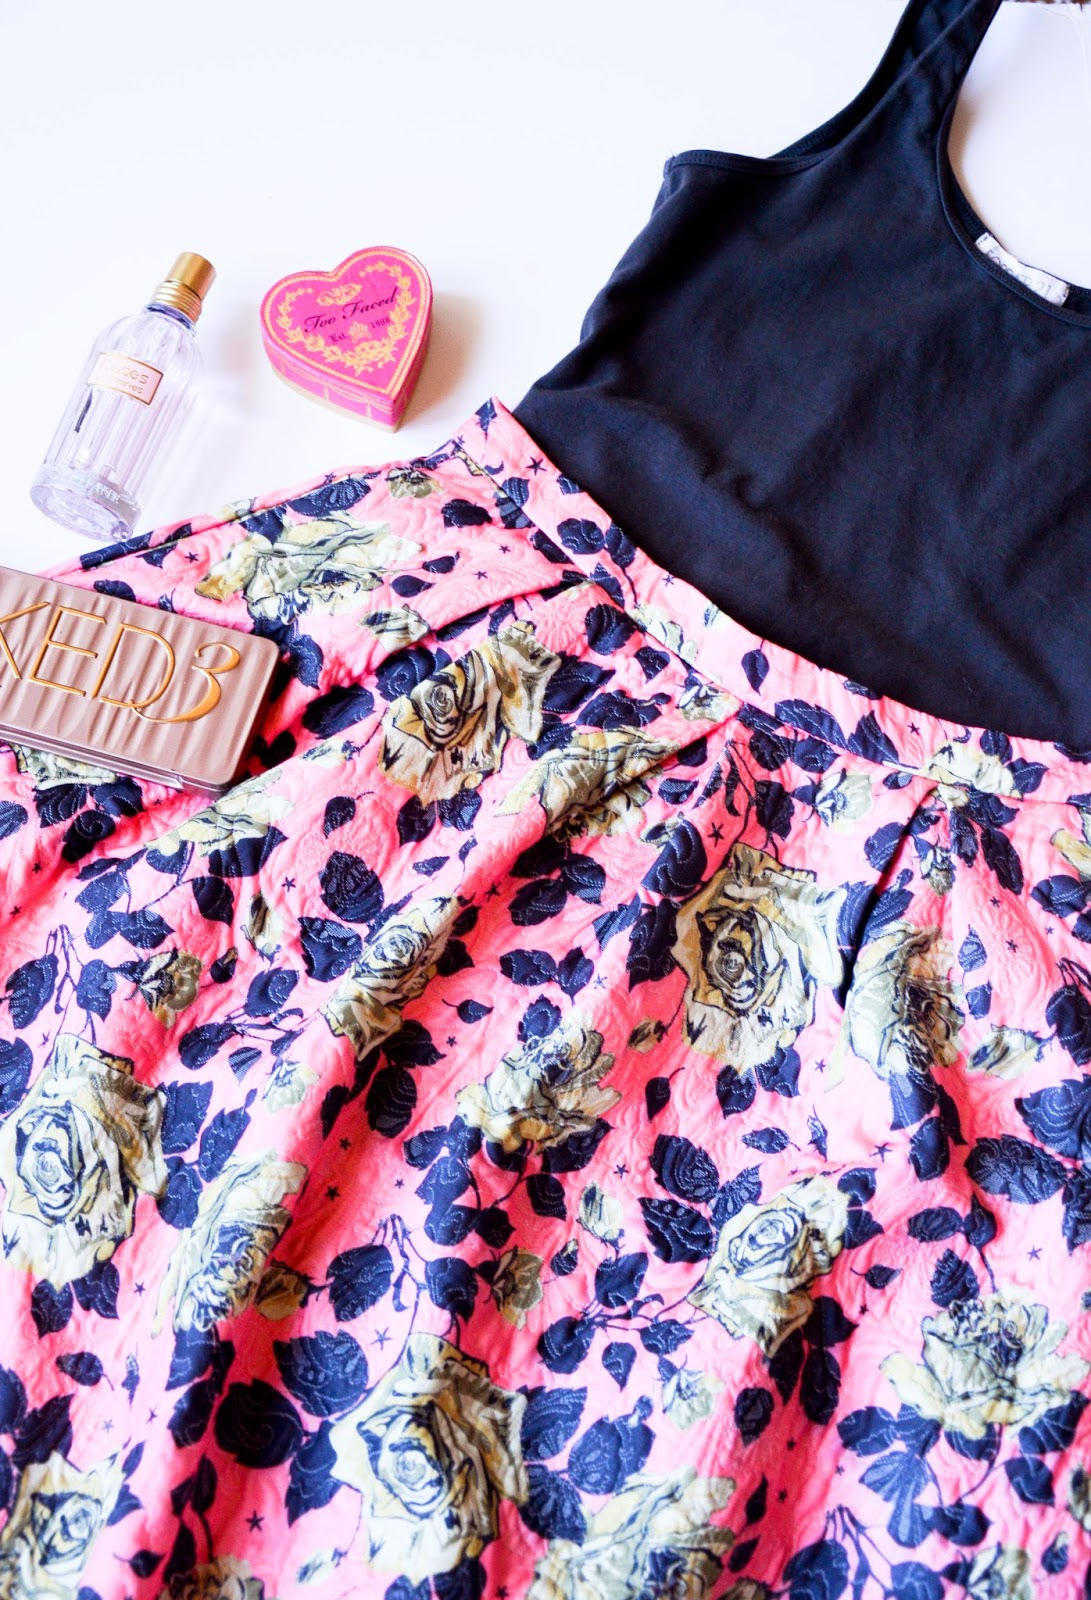 Beauty essentials: L'occitane roses perfume, Too faced heart shaped blush, Urban decay naked 3 eye shadow pallet, pink and gray floral midi skirt from forever21